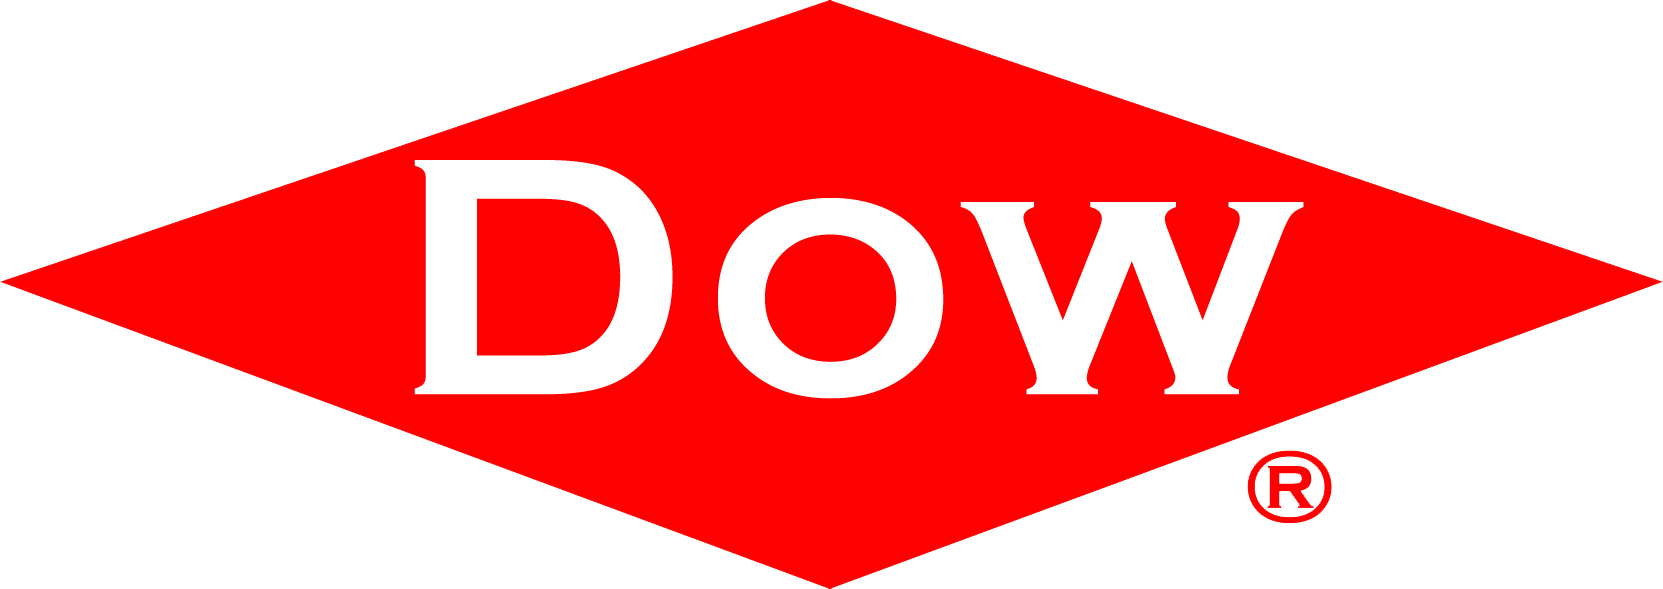 dow.png (121 KB)